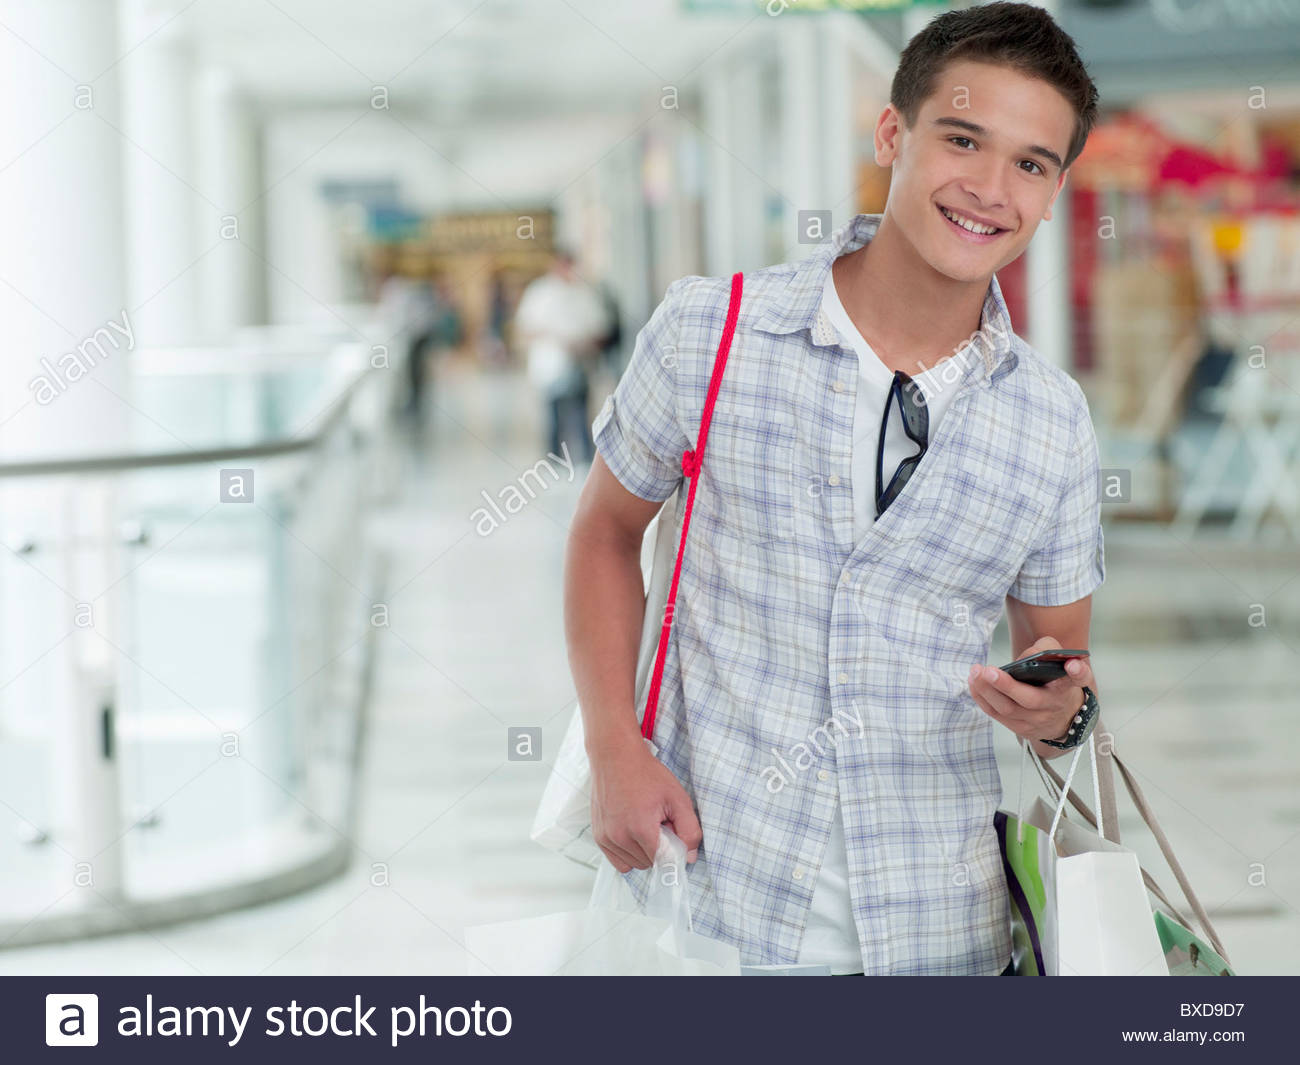 0d7bb4171 Teenage boy shopping in mall Stock Photo: 33484227 - Alamy